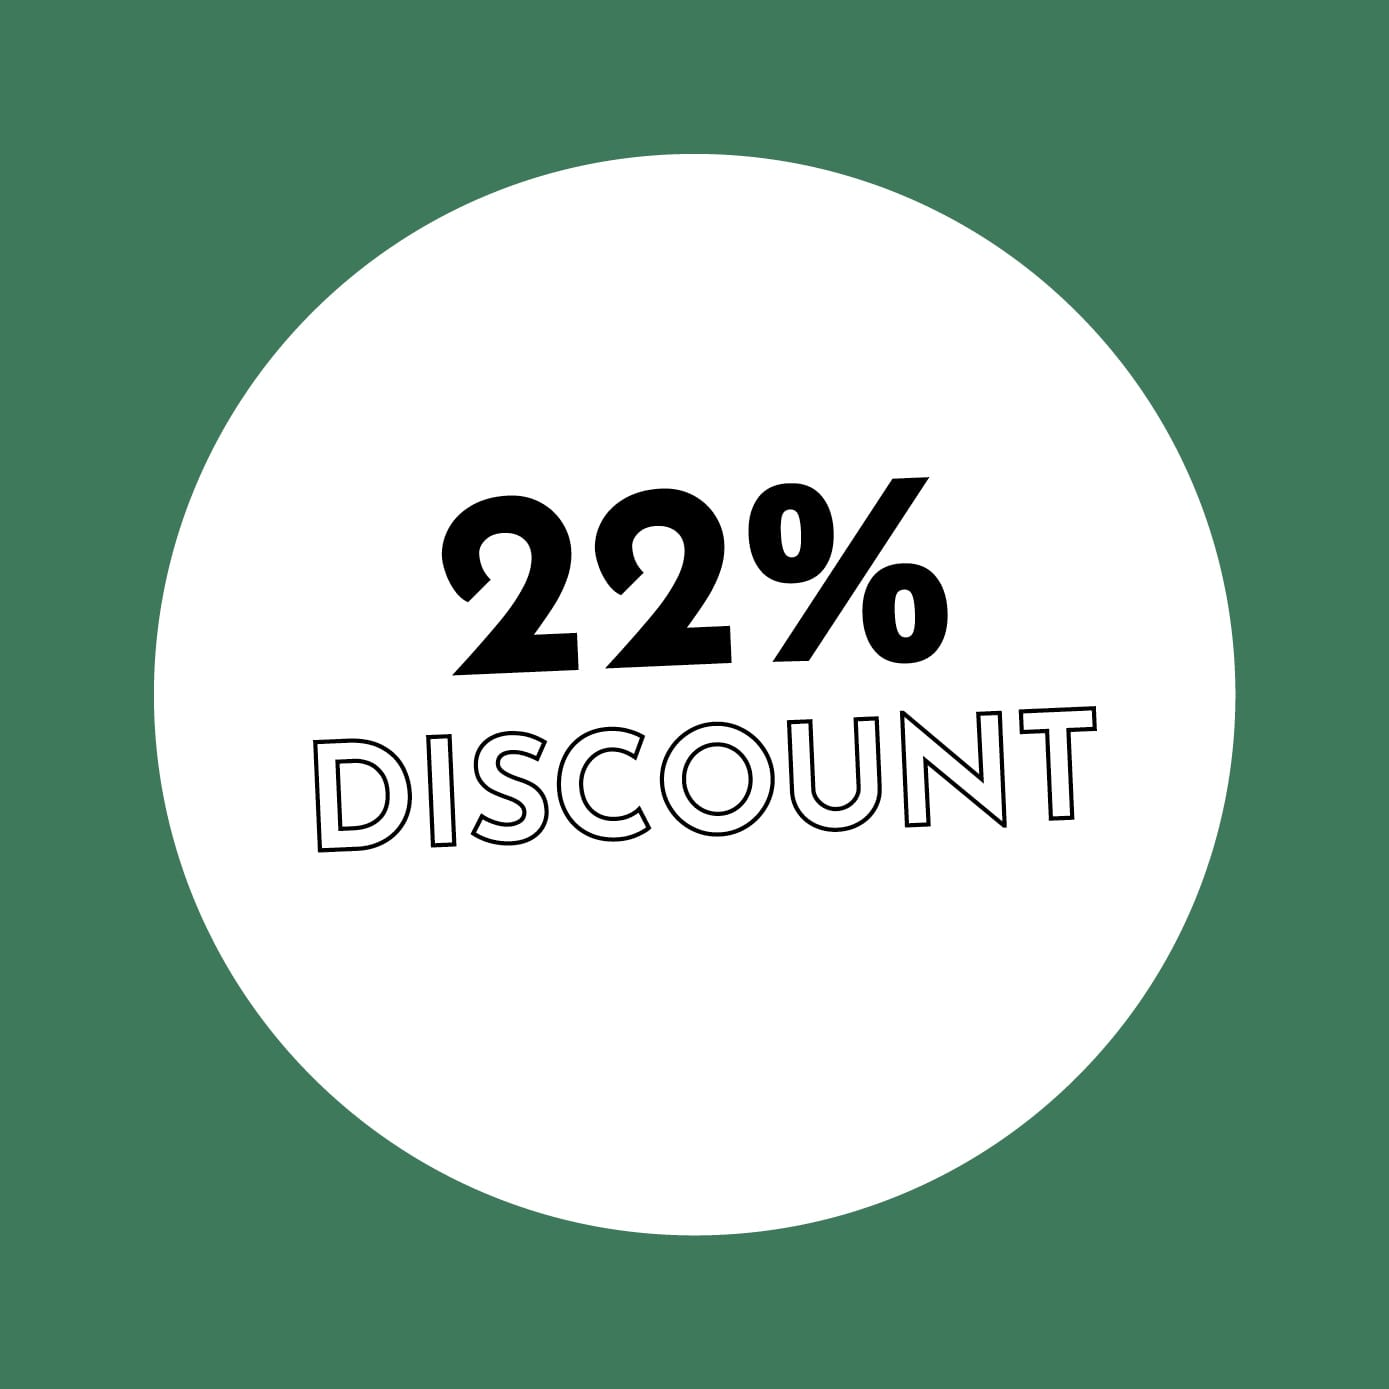 22% Discount